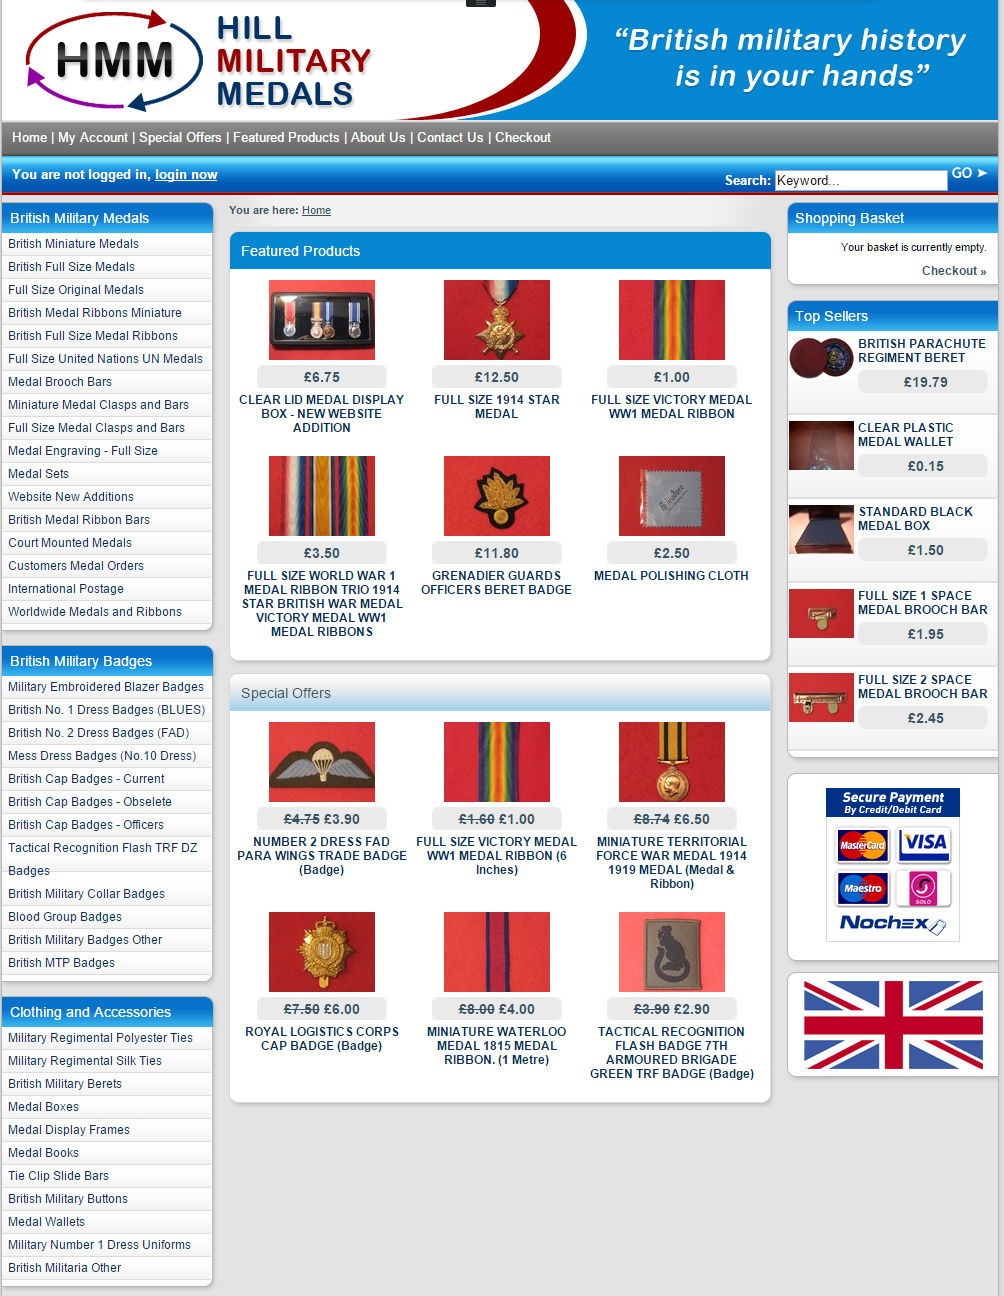 cleartarn website - Hill Military Medals